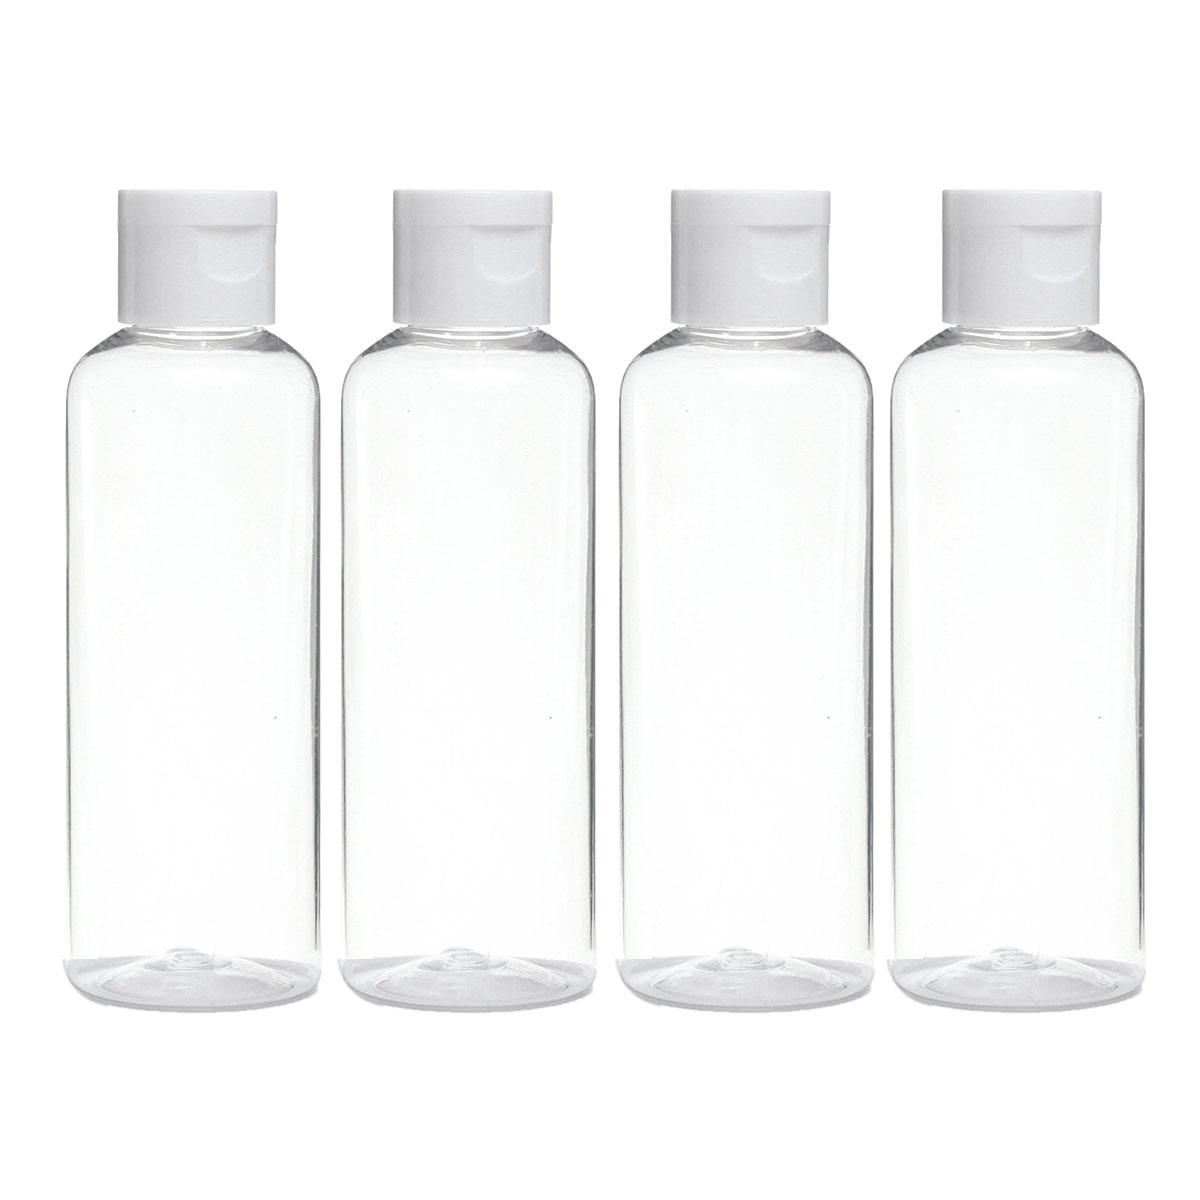 4PCS Empty Clear 100ml PET Cream Container  Portable Cosmetic Travel Shower Lotion Bottles Personalized Sample Lotion Bottle free shipping promotion 10pcs lot 100ml pet clear bottle 100ml flat lotion bottles sprayer bottles 100ml